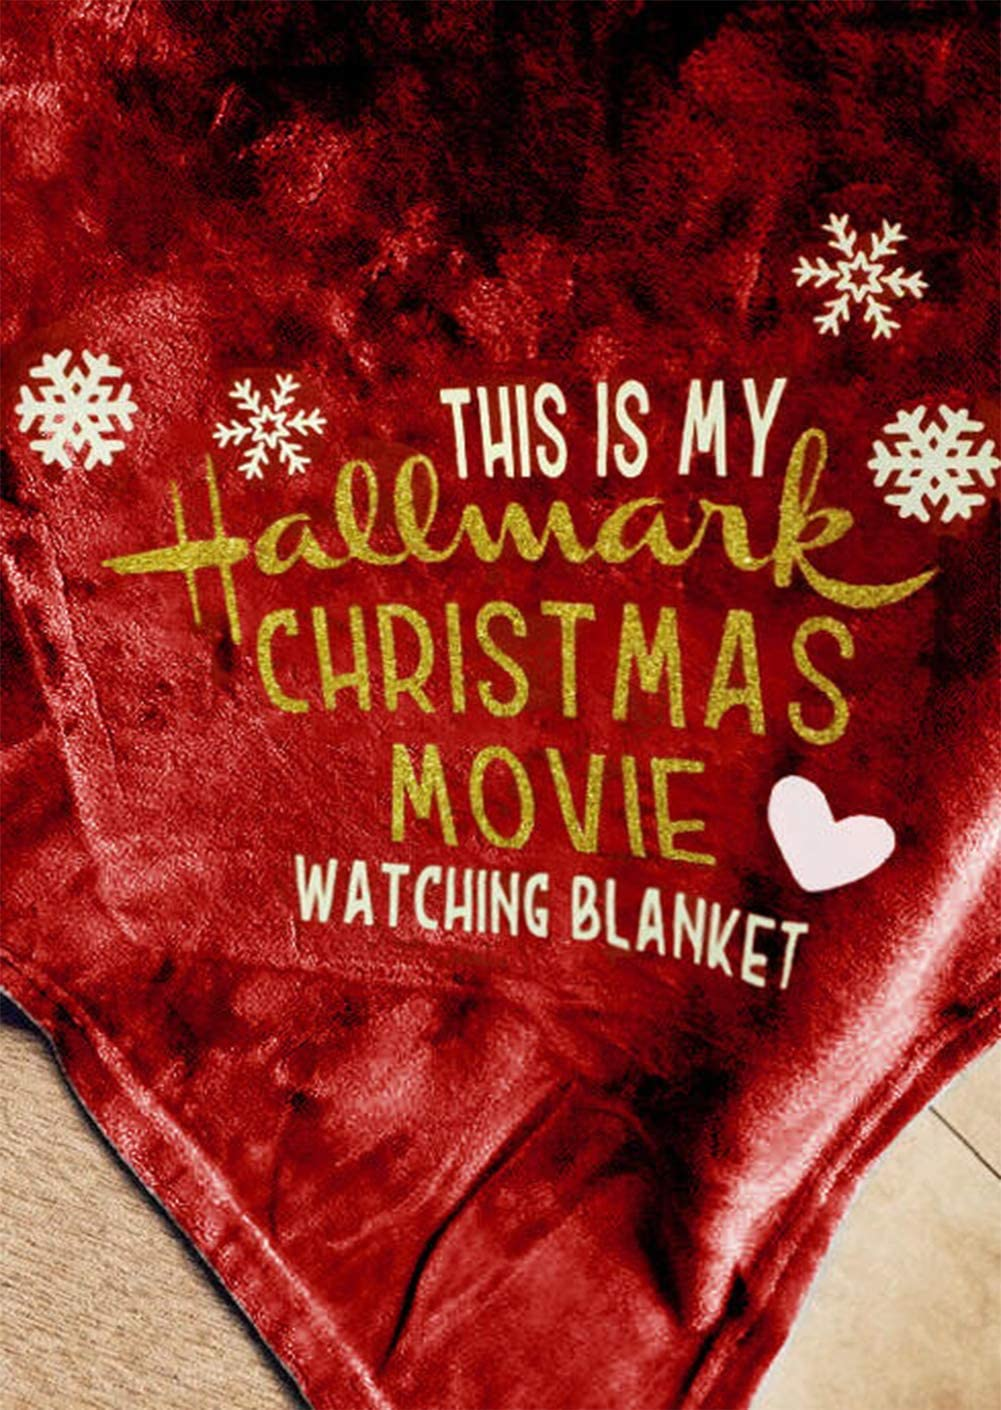 Dark Gray, 51x63 Inches Gowone This is My Hallmark Christmas Movie Watching Blanket Super Soft Flannel Fleece Snowflake Heart Pattern Decor Throw for Sofa Couch Bed 47x59 Inches